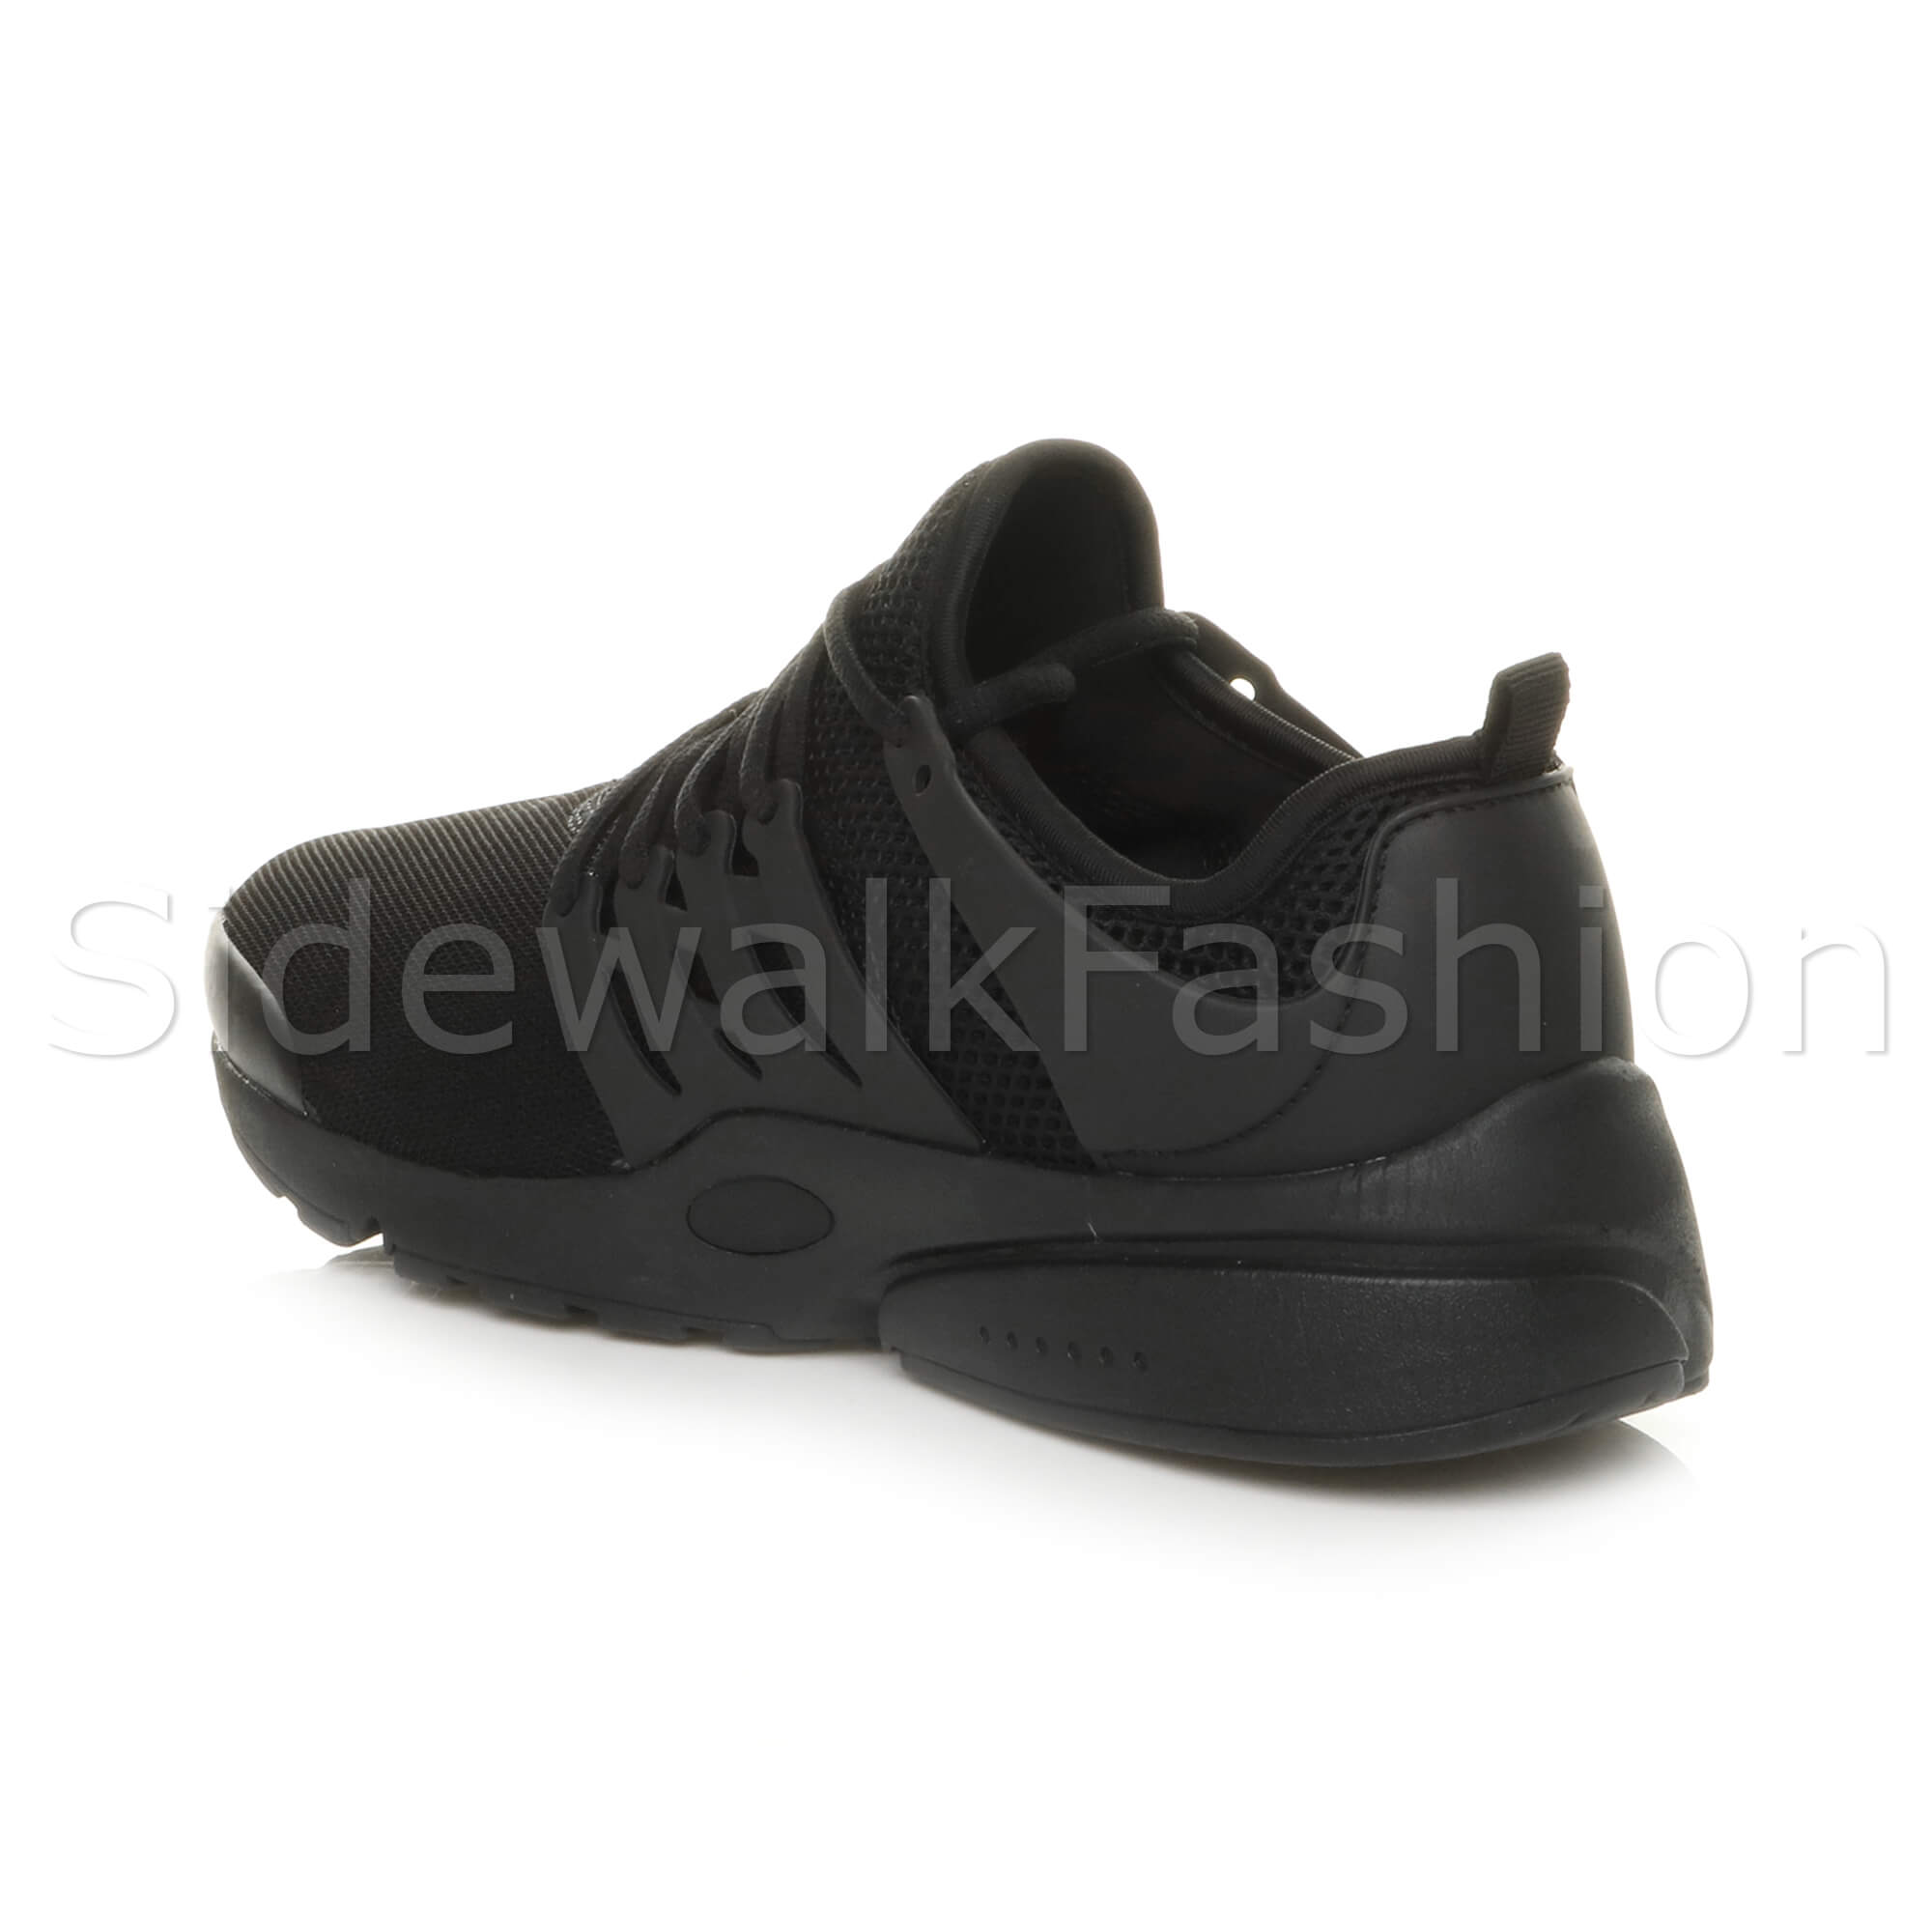 Mens-lace-up-sports-casual-low-top-gym-running-flexible-sneakers-trainers-size miniatuur 5